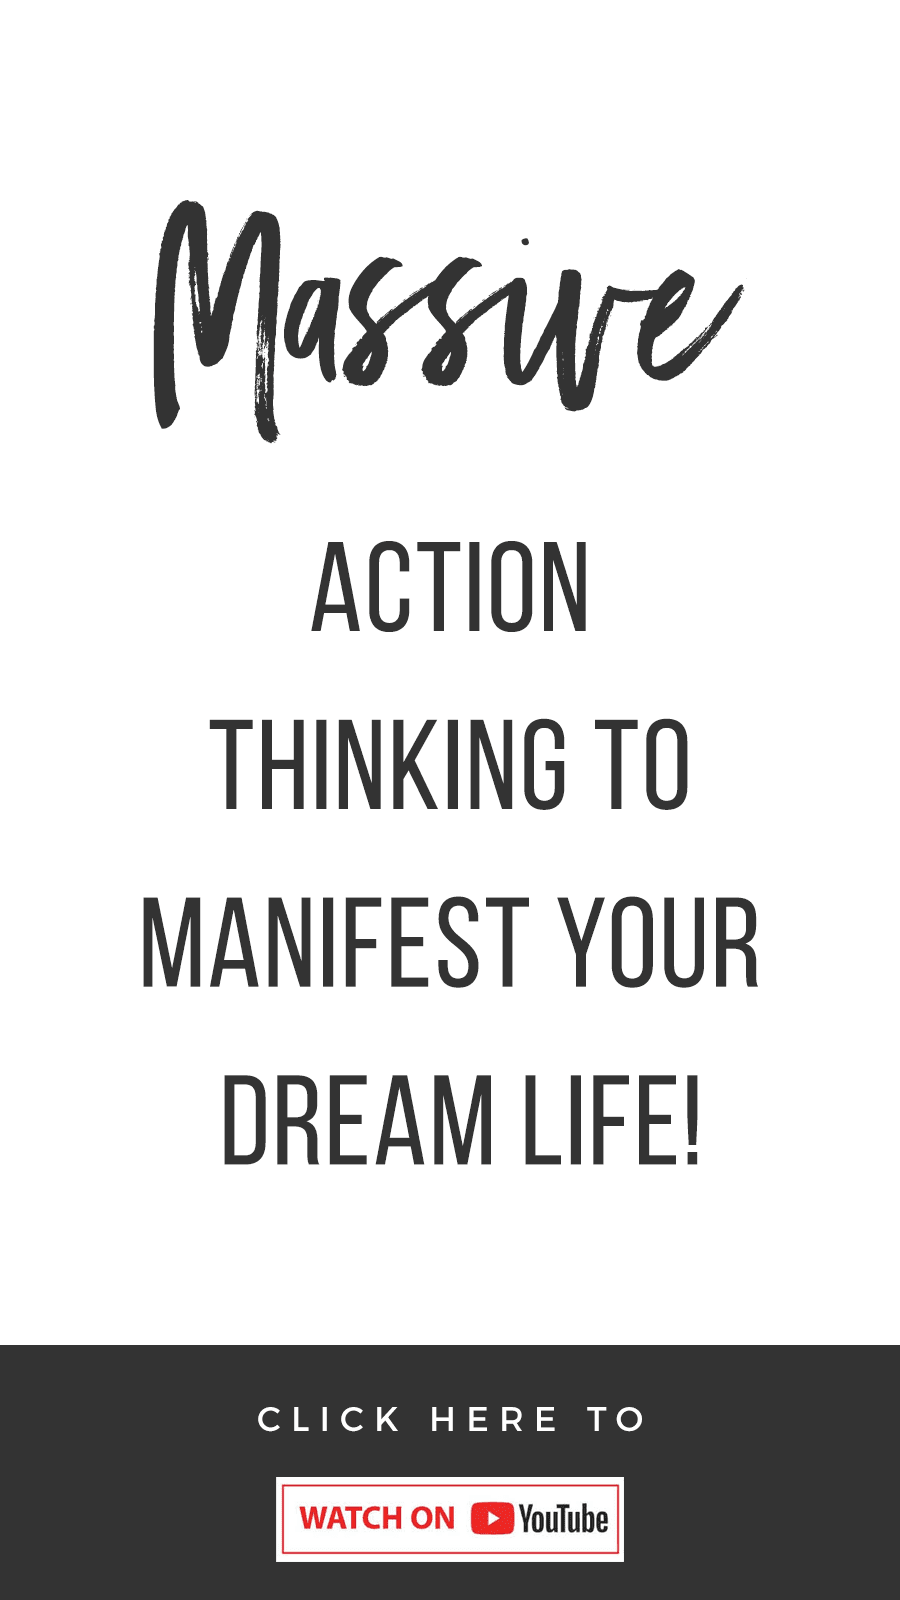 Massive Action Thinking To Manifest Your Dream Life